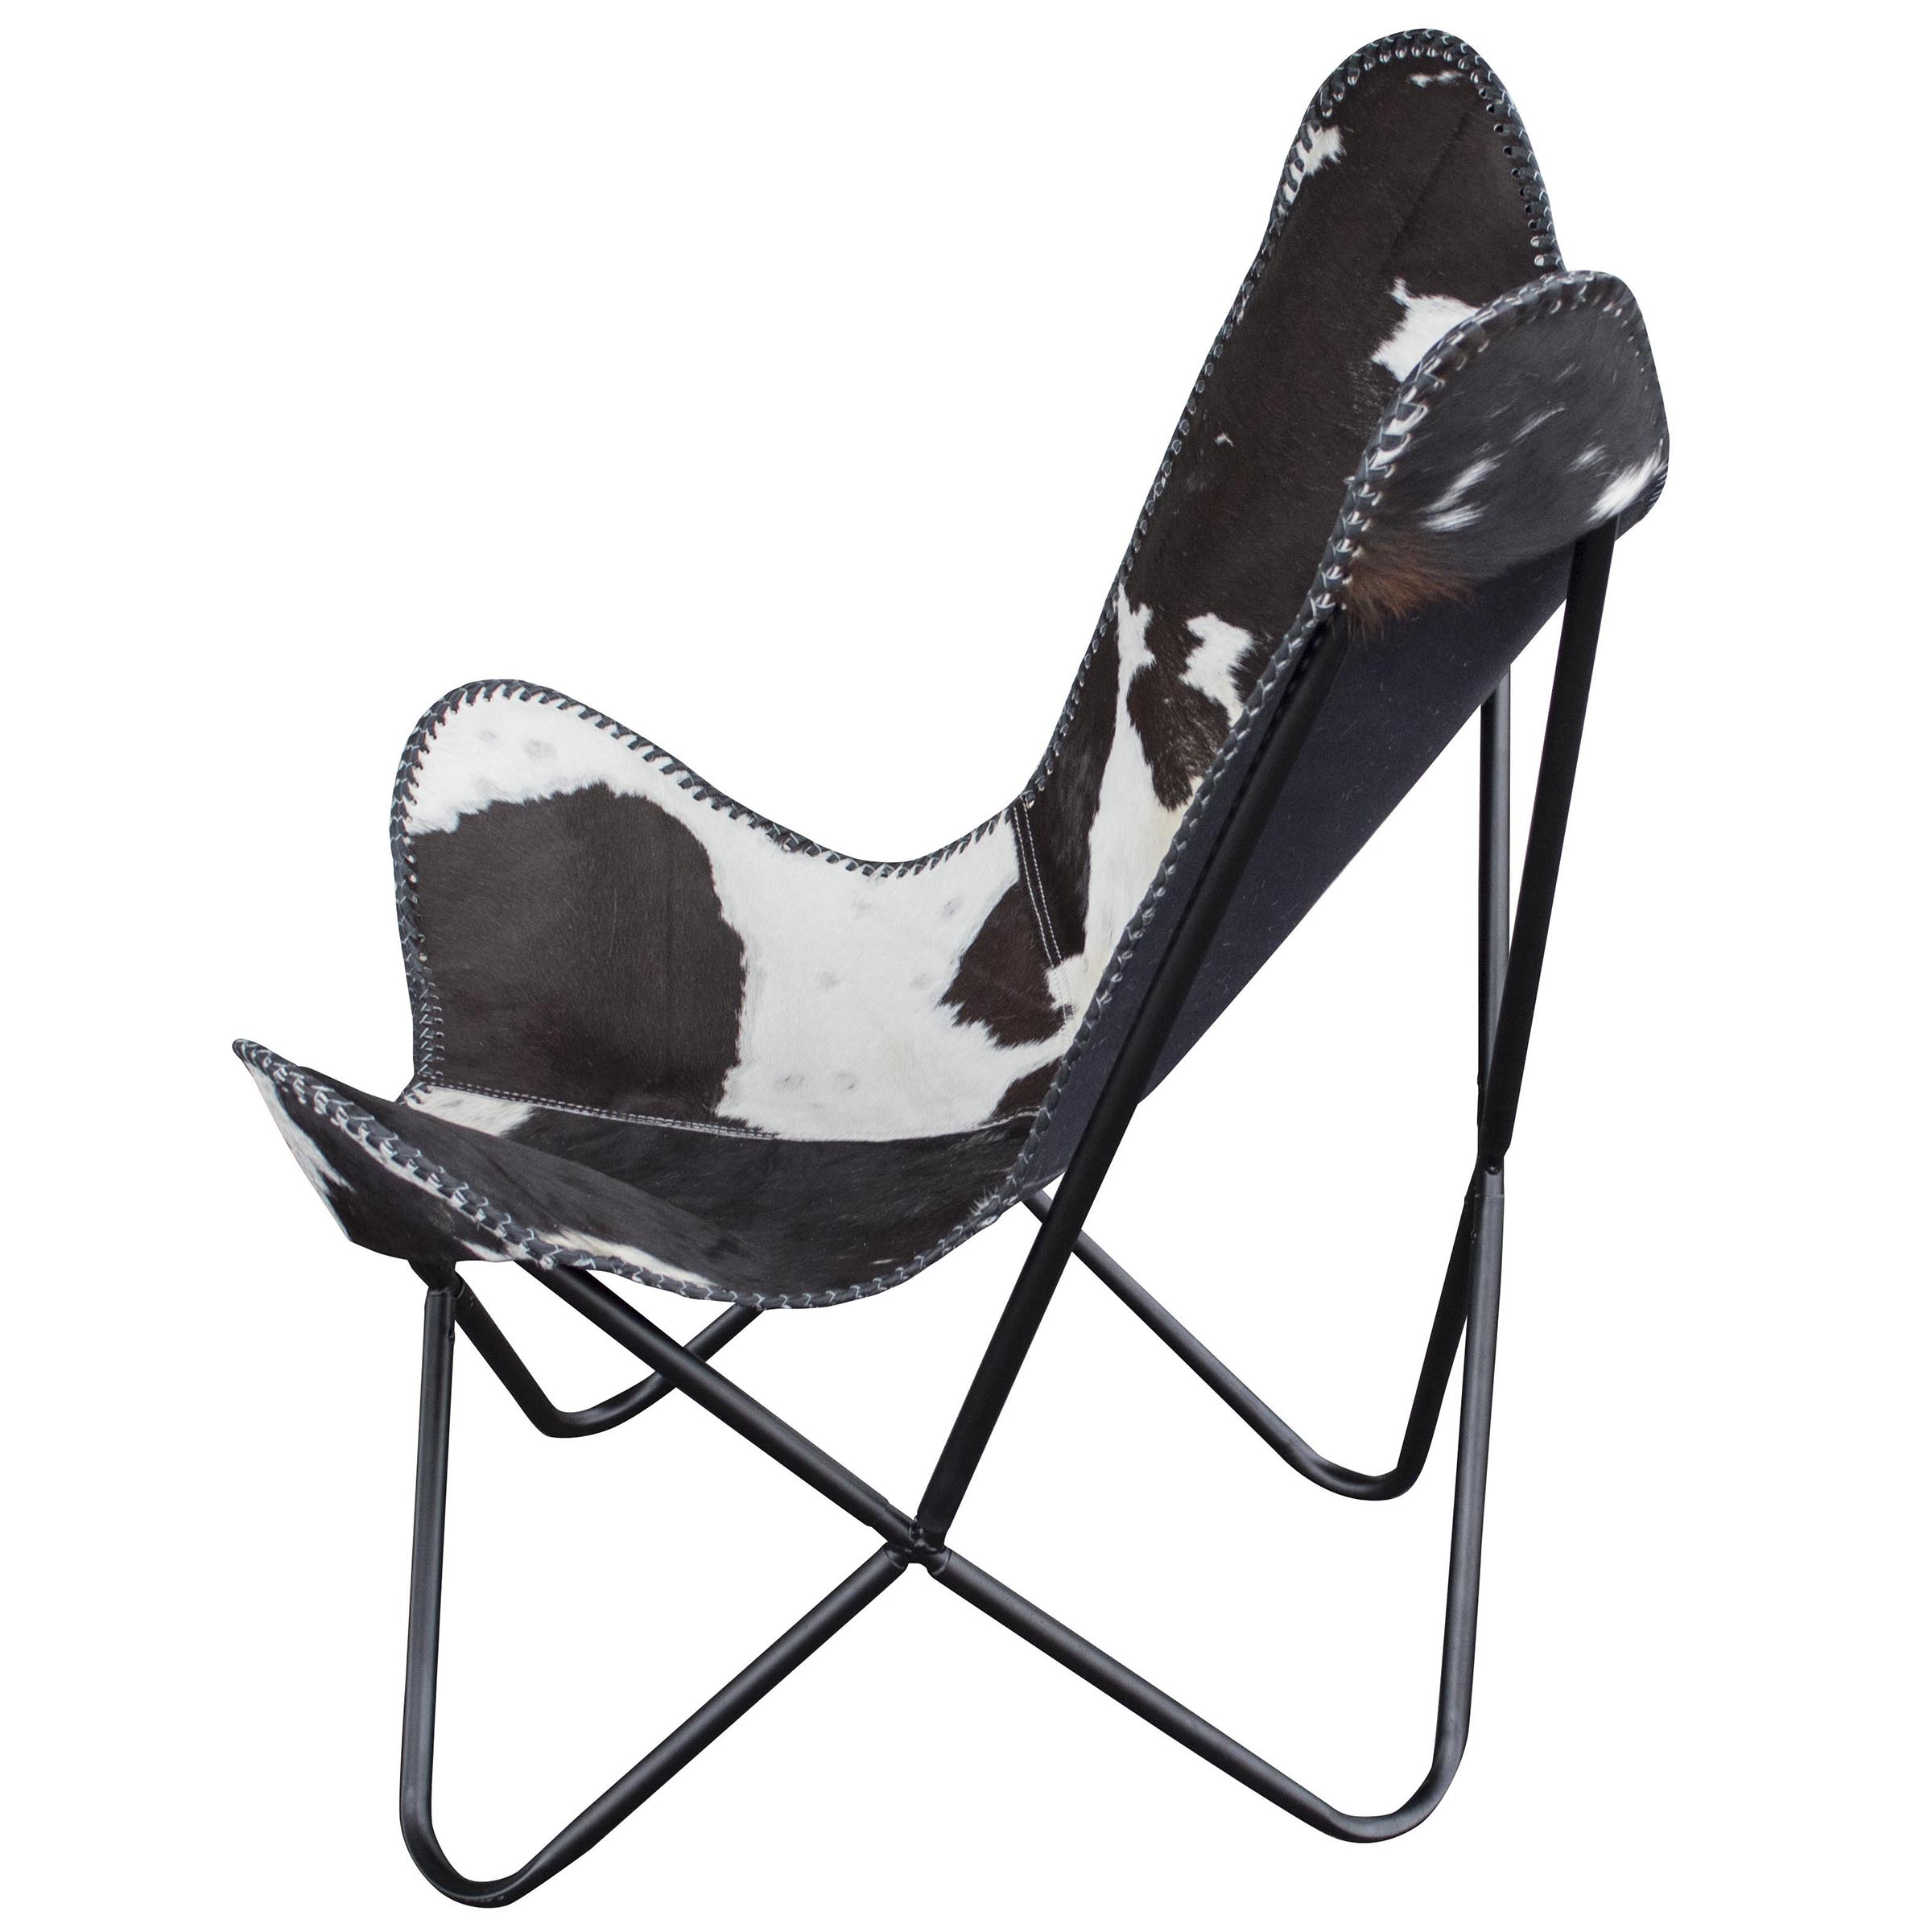 Charmant Amerihome Leather Butterfly Chair In Natural Hide Image 2 Of 4